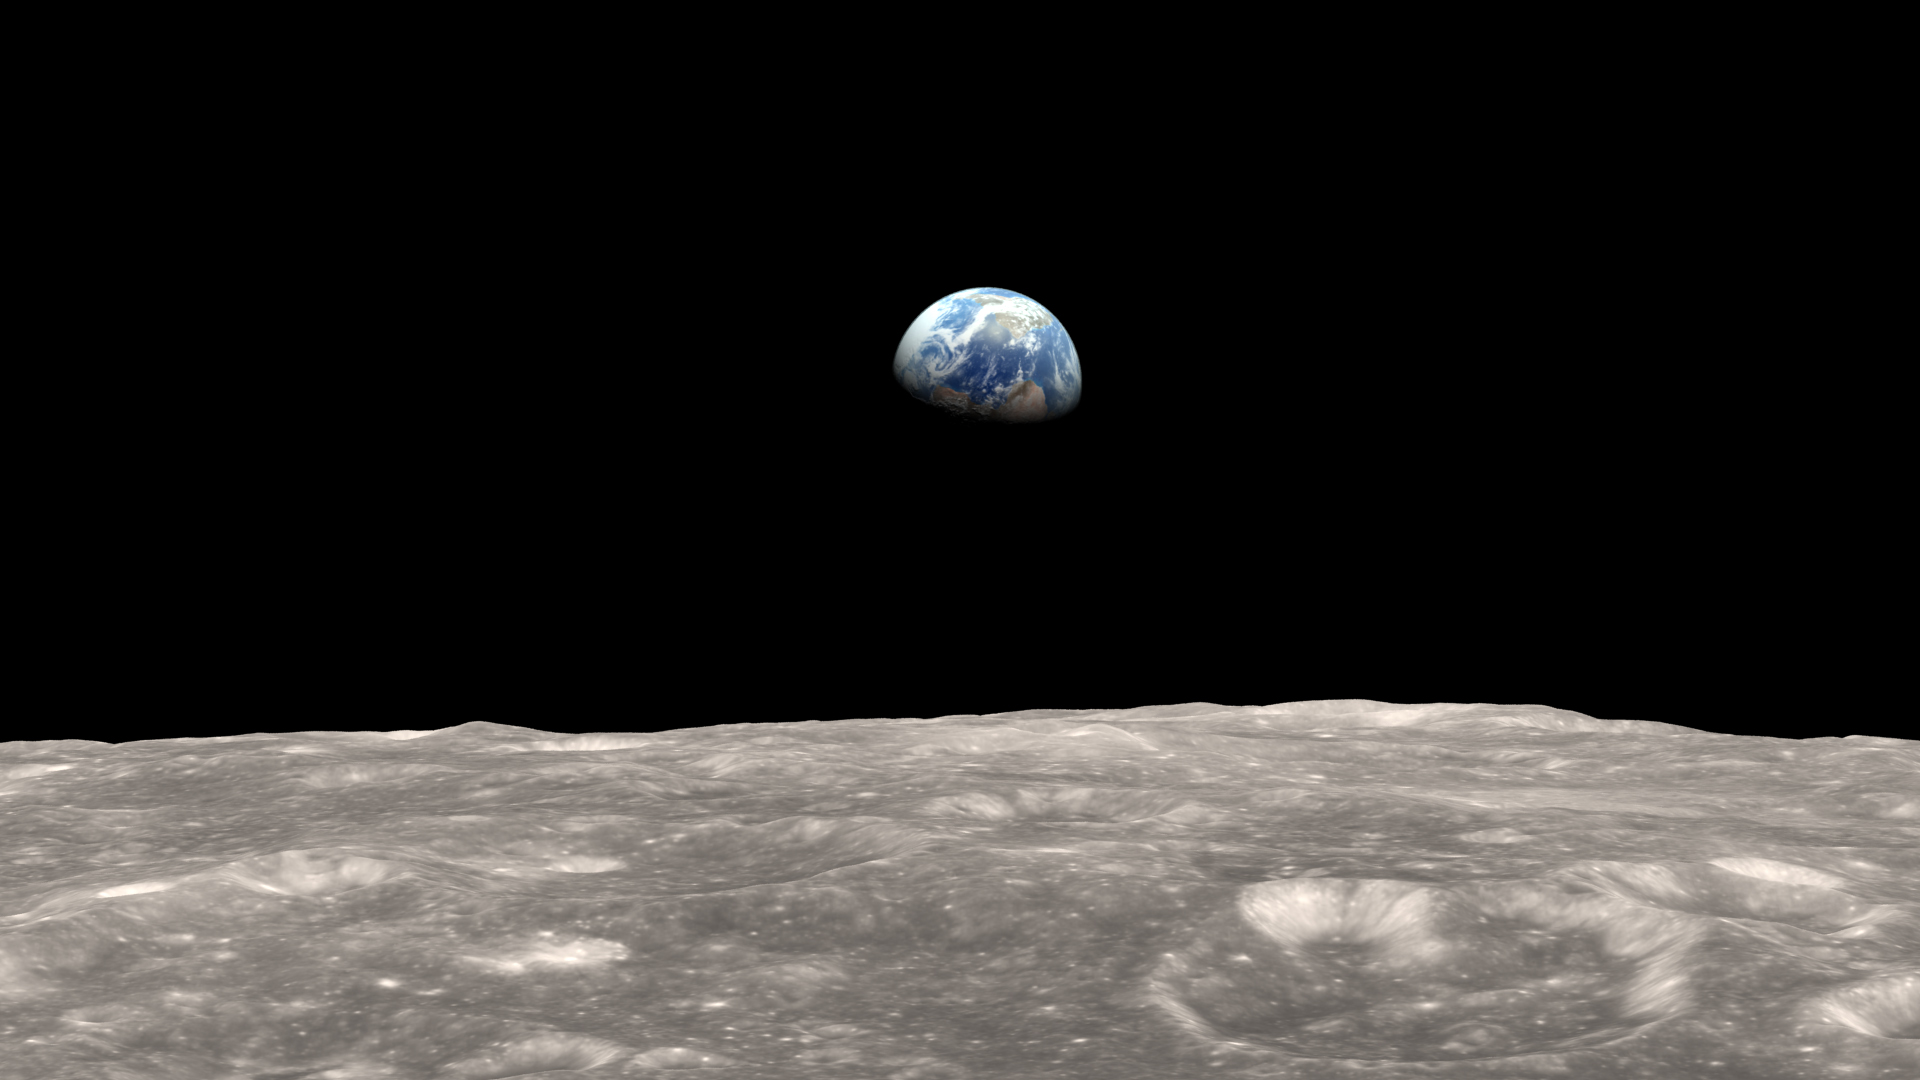 earth from moon apollo - photo #6